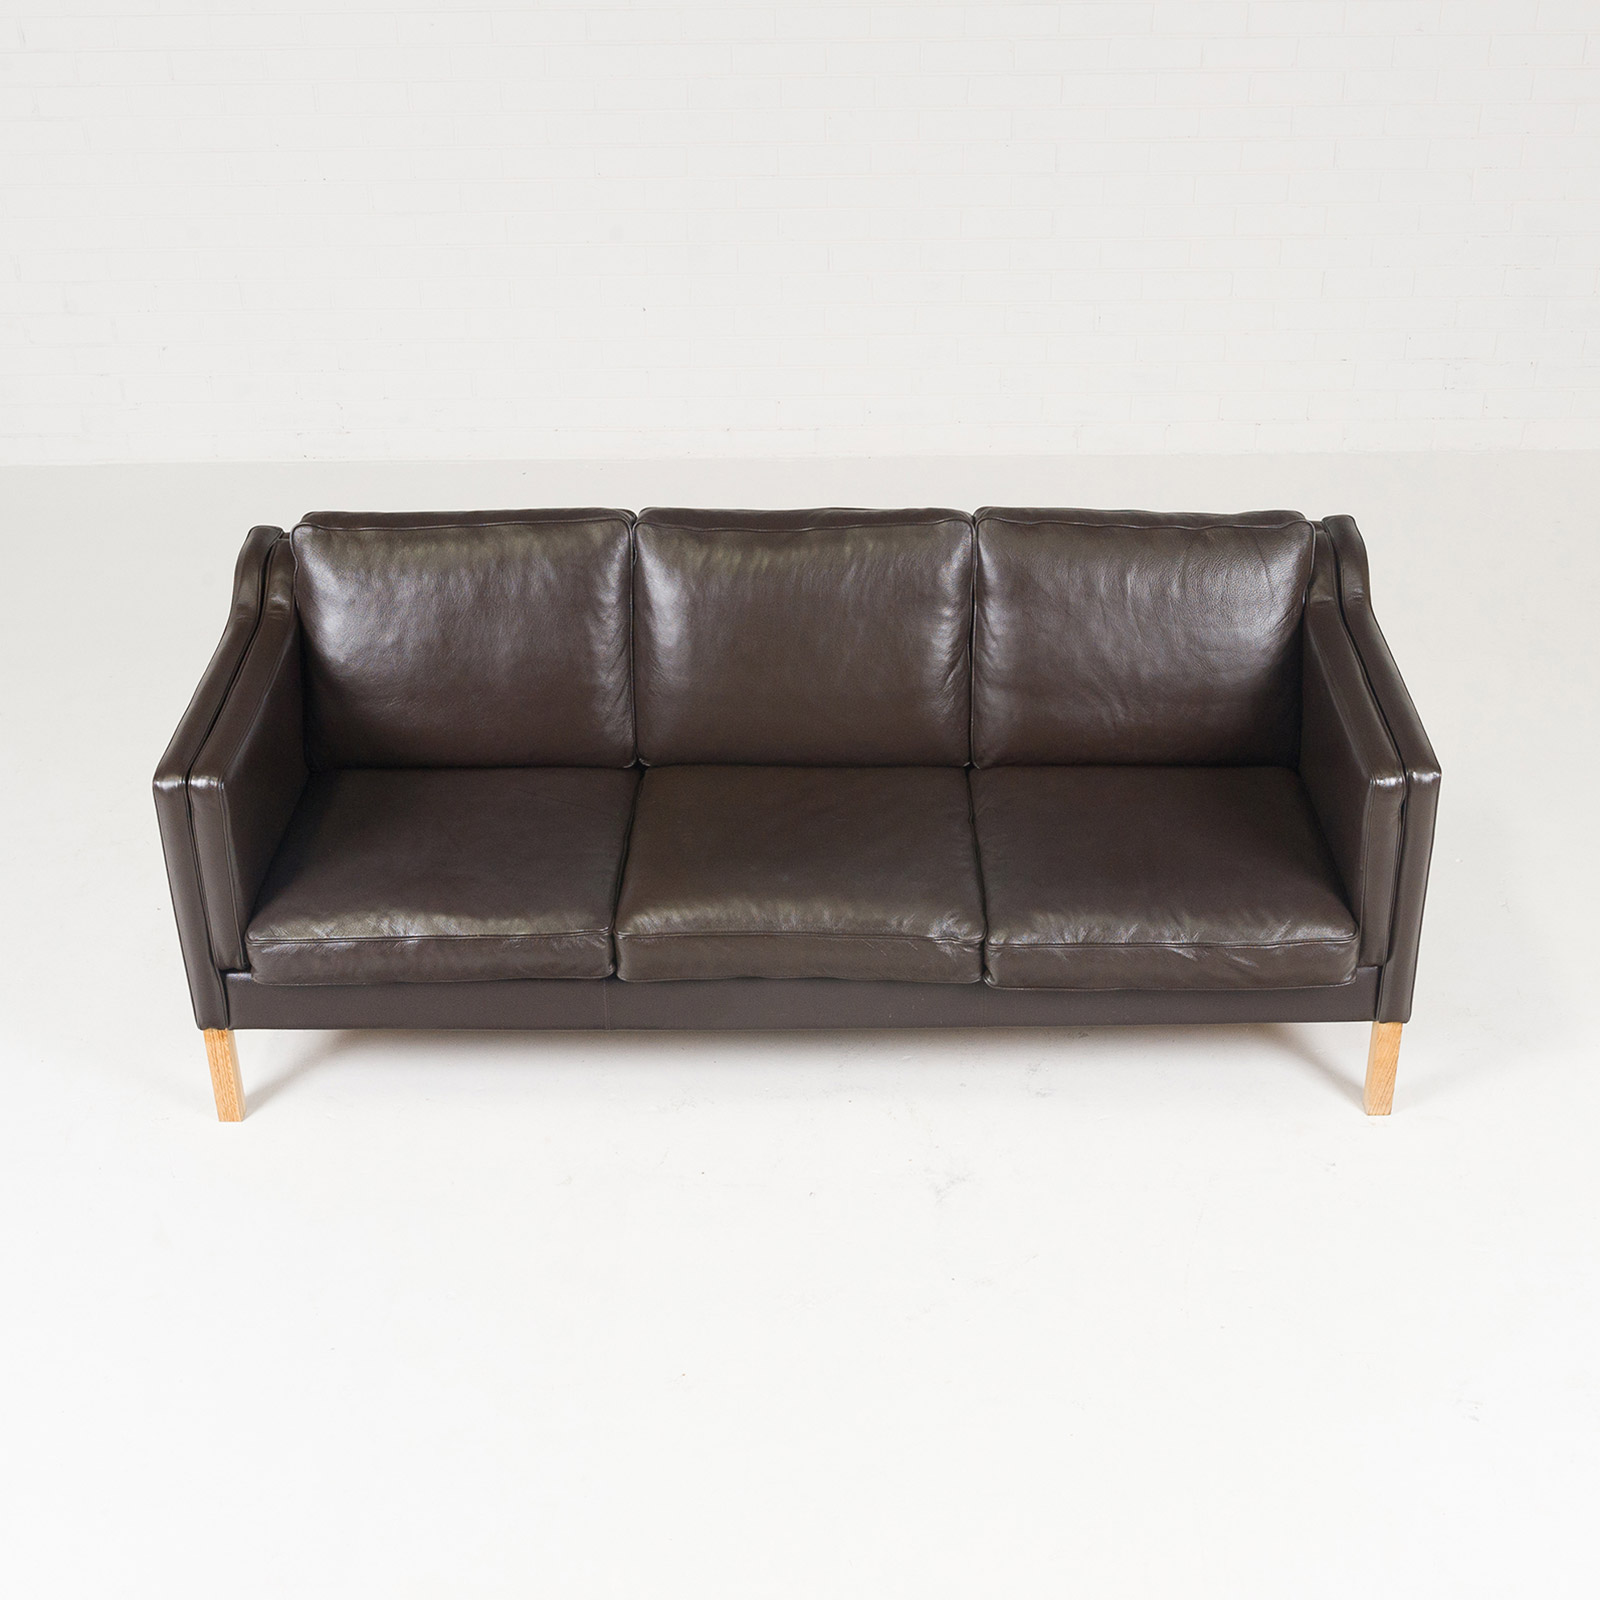 brown leather sofa on legs saddlemen road goldwing 3 seat in mocha and oak 1960s